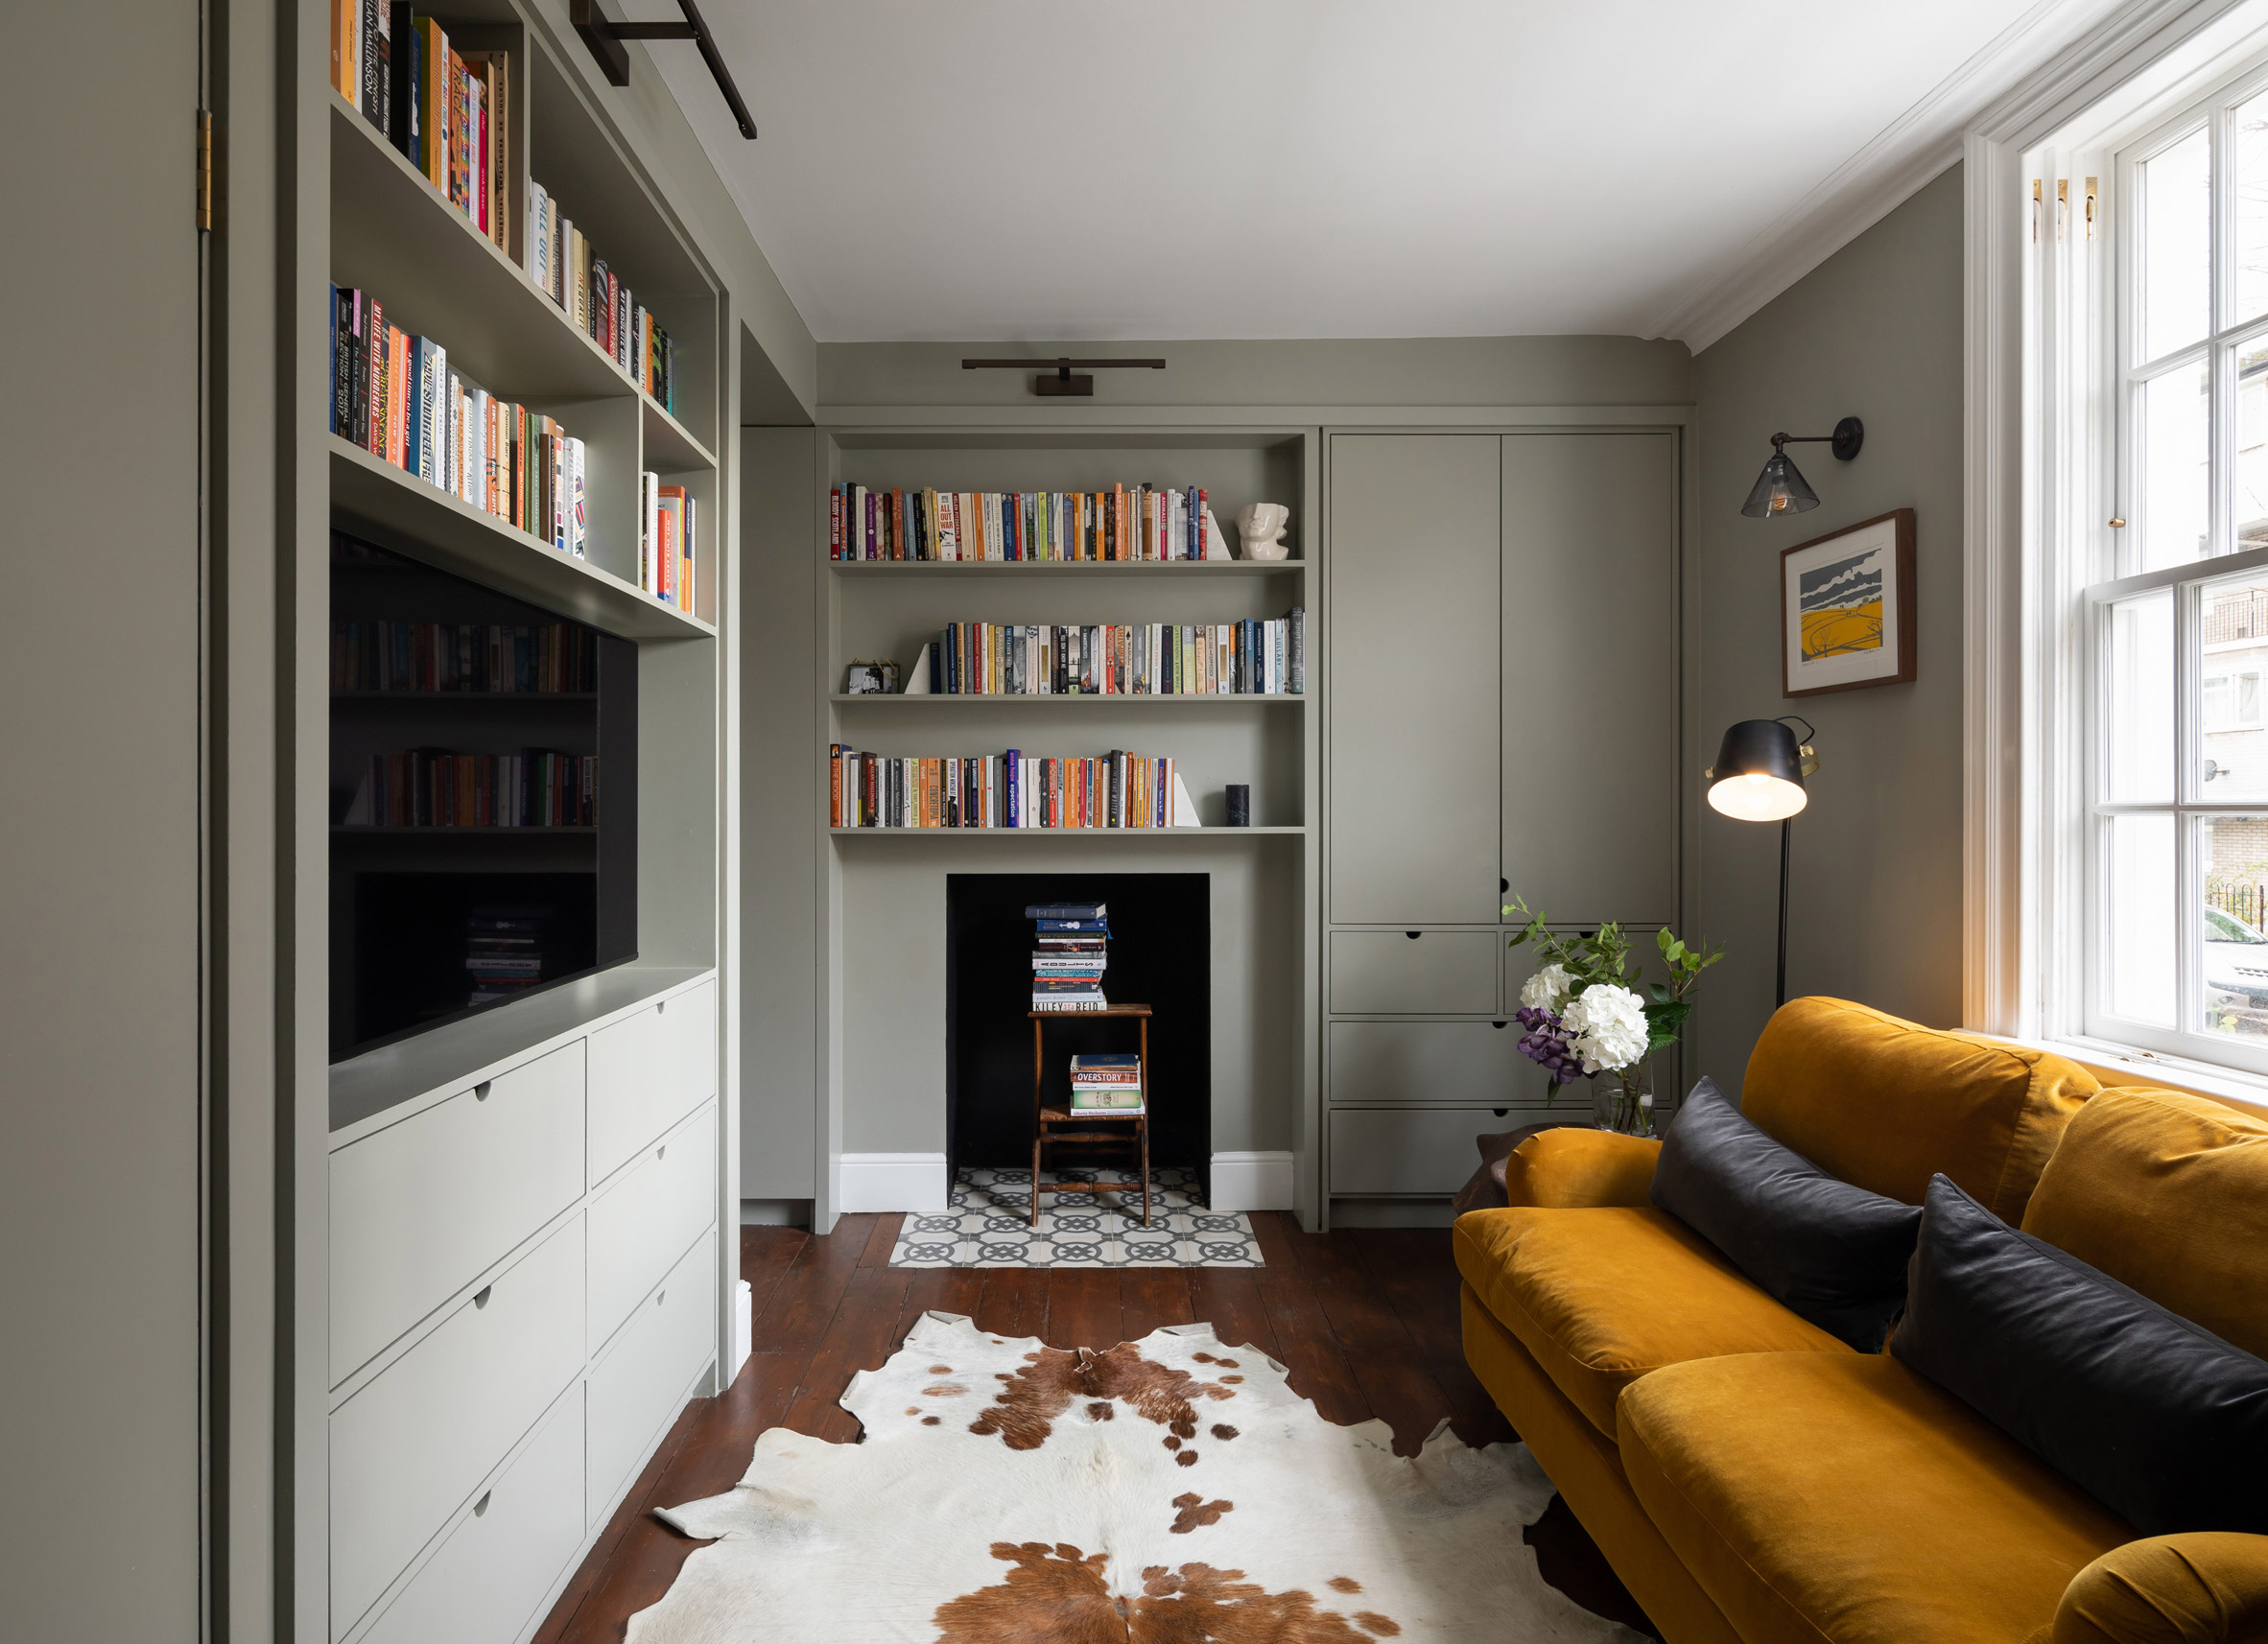 A living room with pale green cabinetry